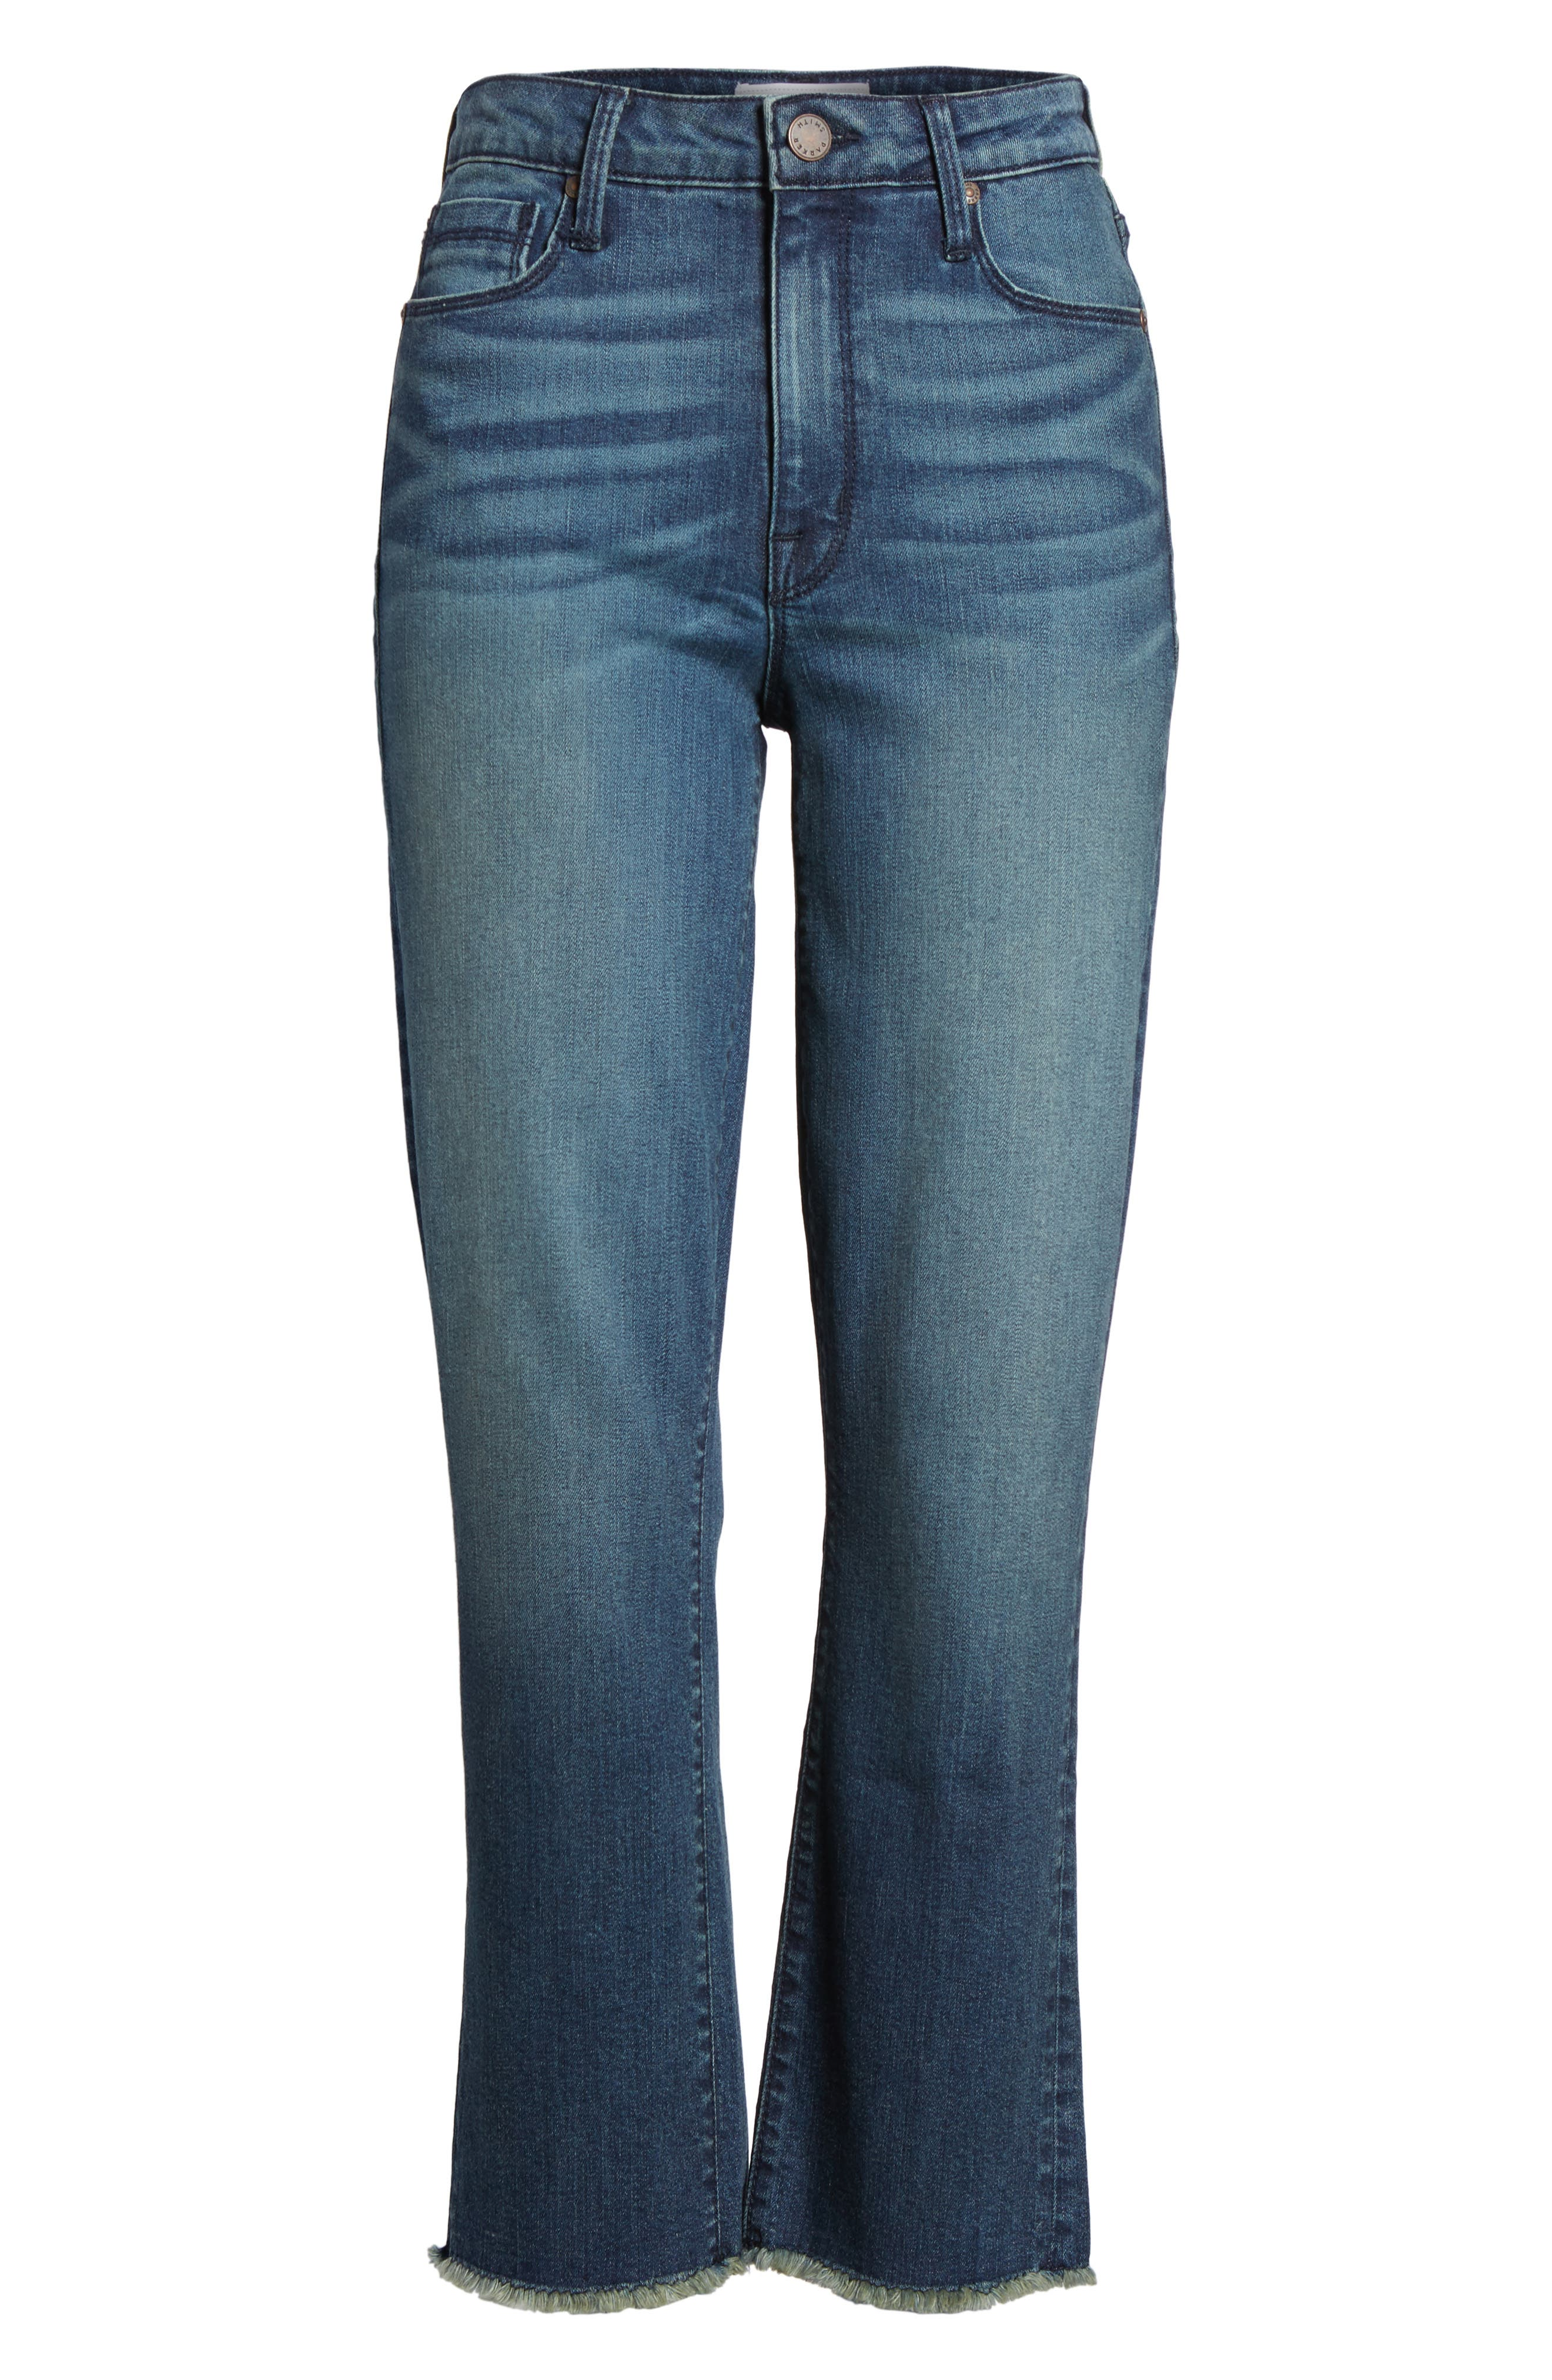 Pin-Up Straight Crop Jeans,                             Alternate thumbnail 7, color,                             424